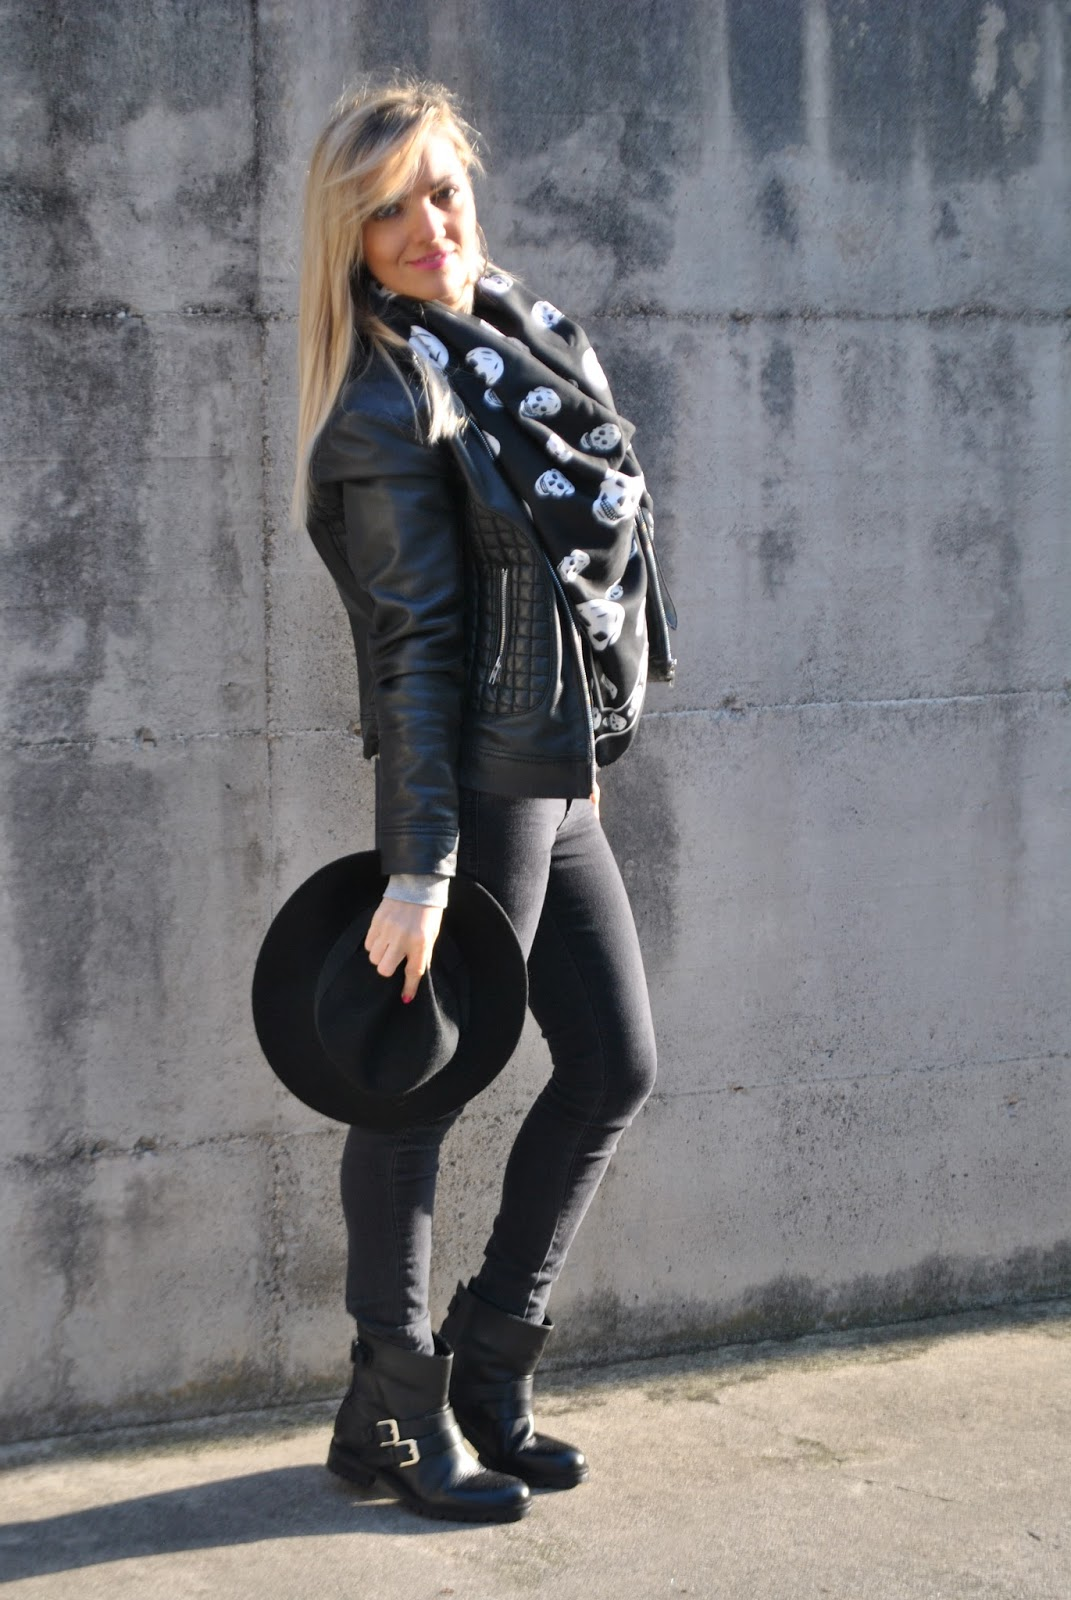 Popolare Color-Block By FelyM.: OUTFIT: SKINNY BLACK JEANS AND FEDORA HAT  WA25